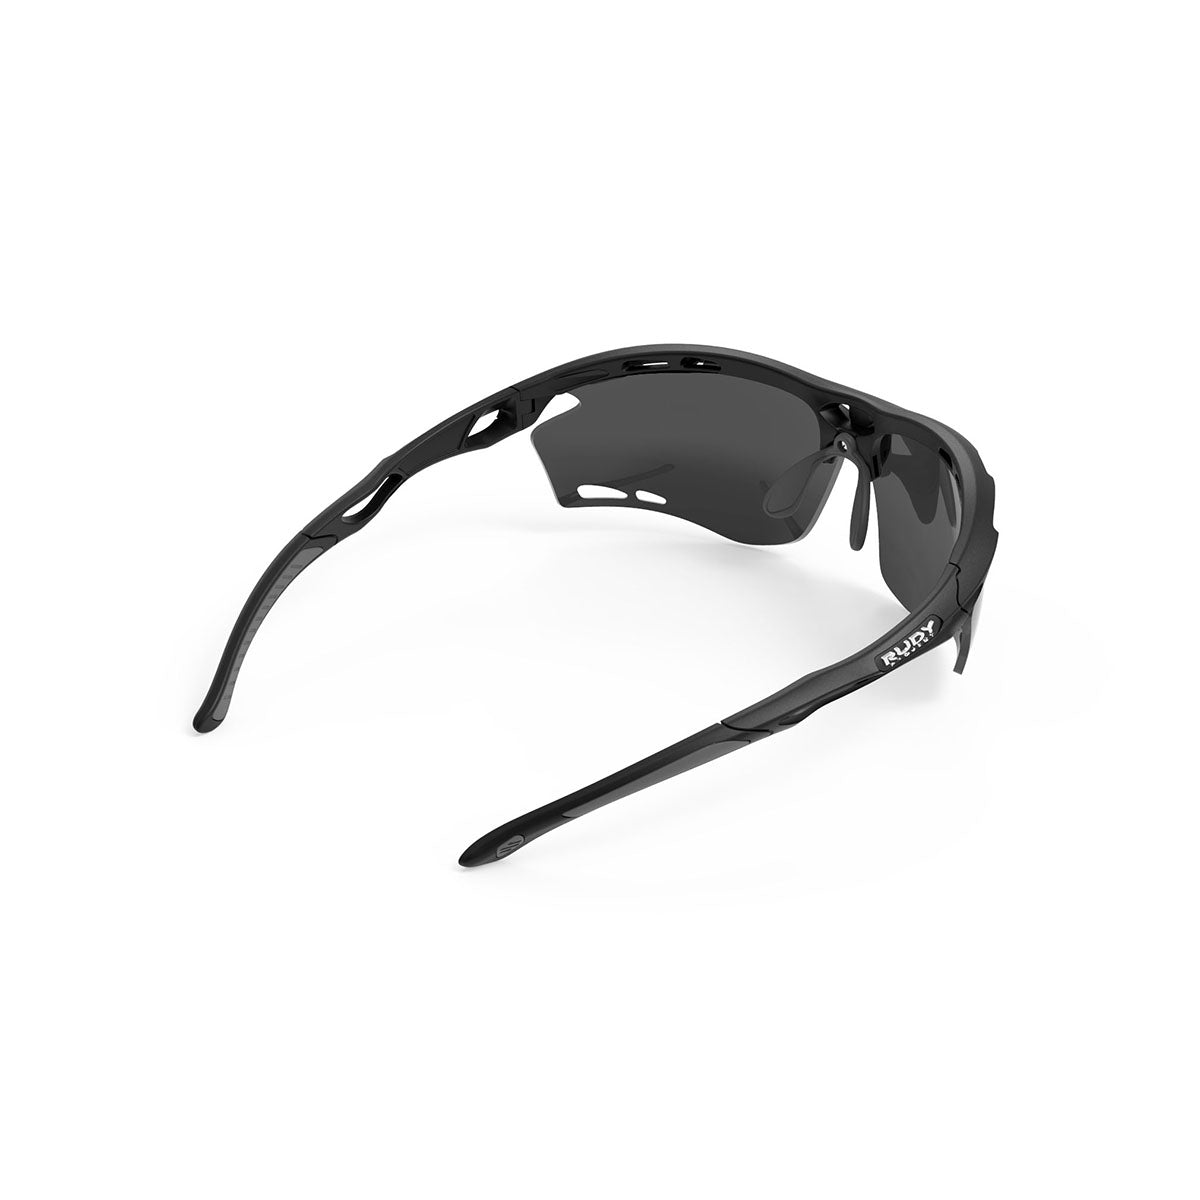 Rudy Project - Propulse - frame color: Matte Black - lens color: Smoke Black - Bumper Color:  - photo angle: Top Back Angle Variant Hover Image